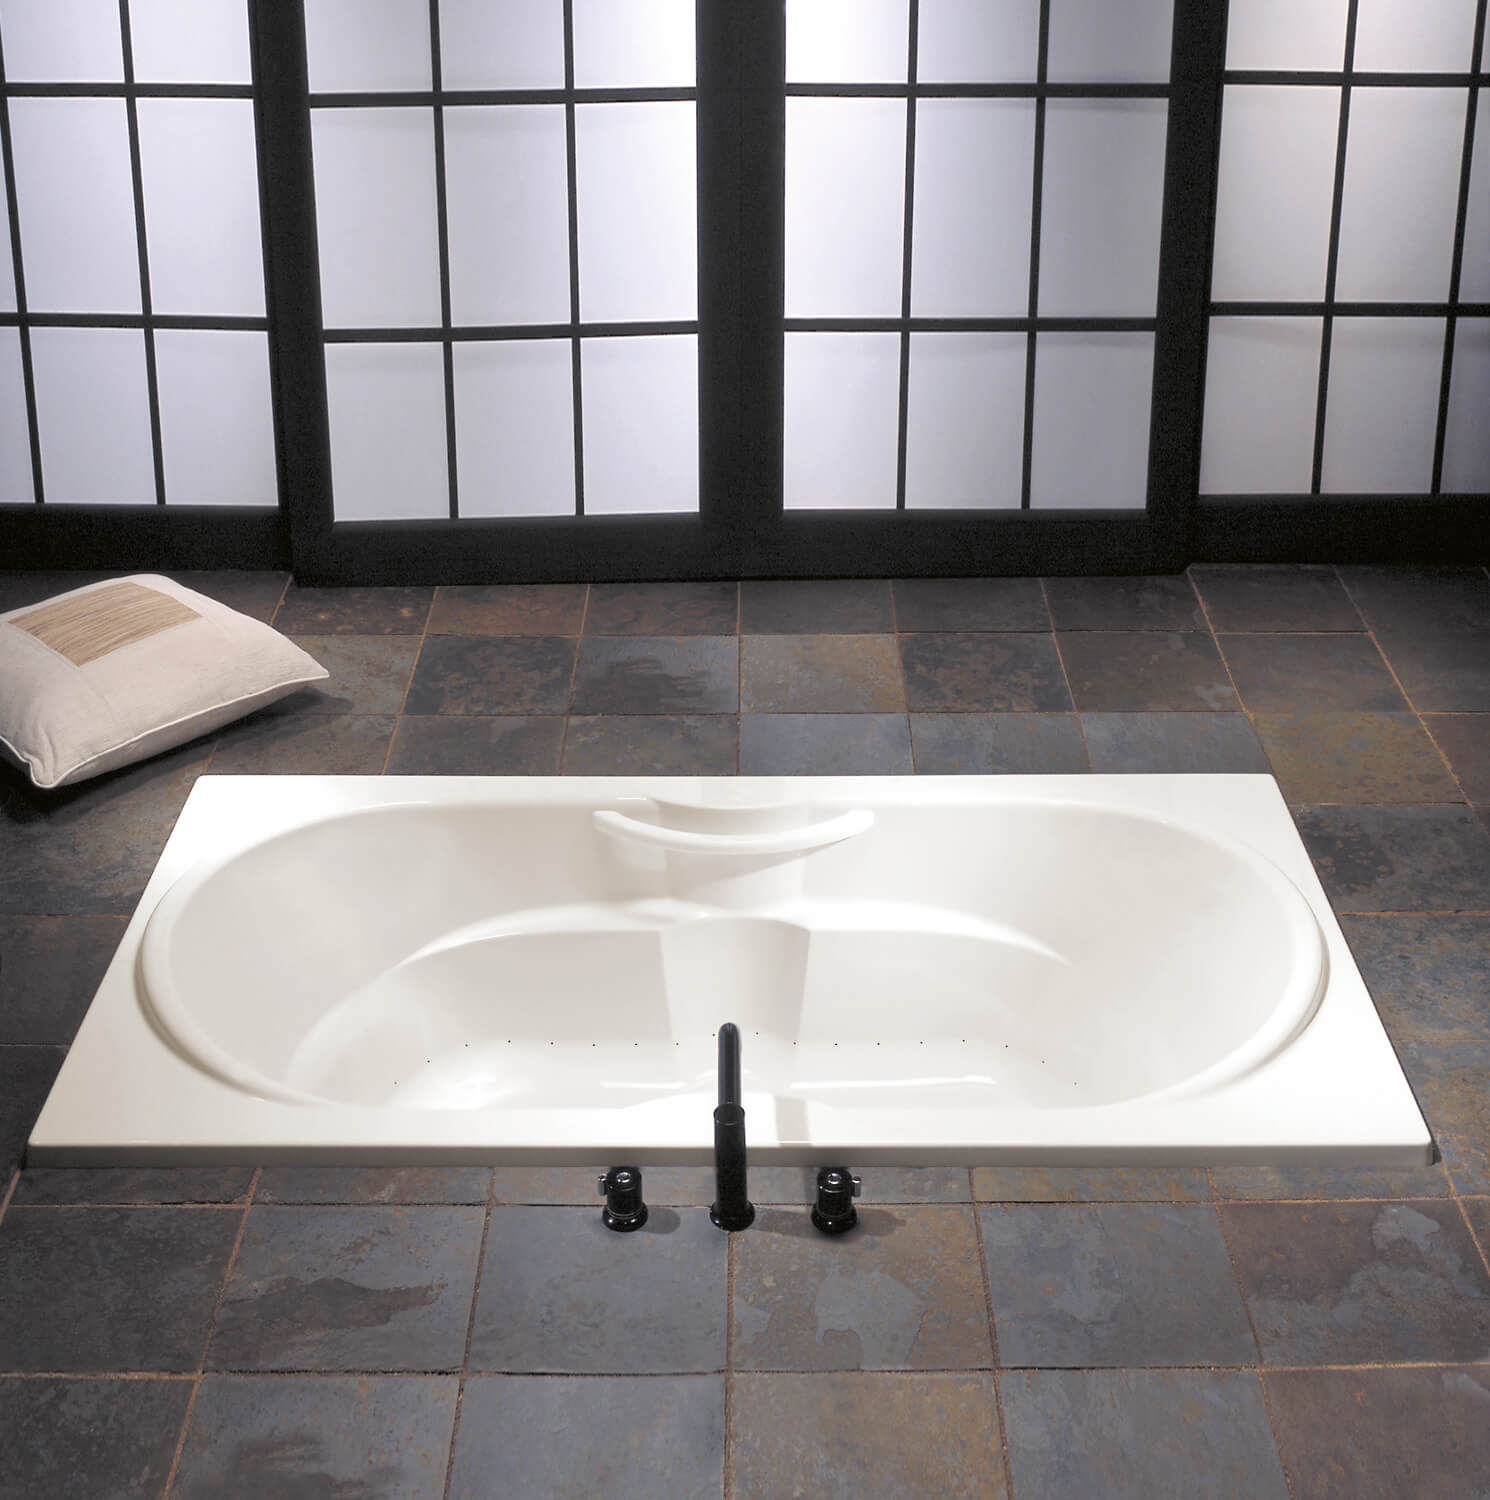 Bainultra Thermal 60 two person drop-in air jet bathtub for your modern bathroom